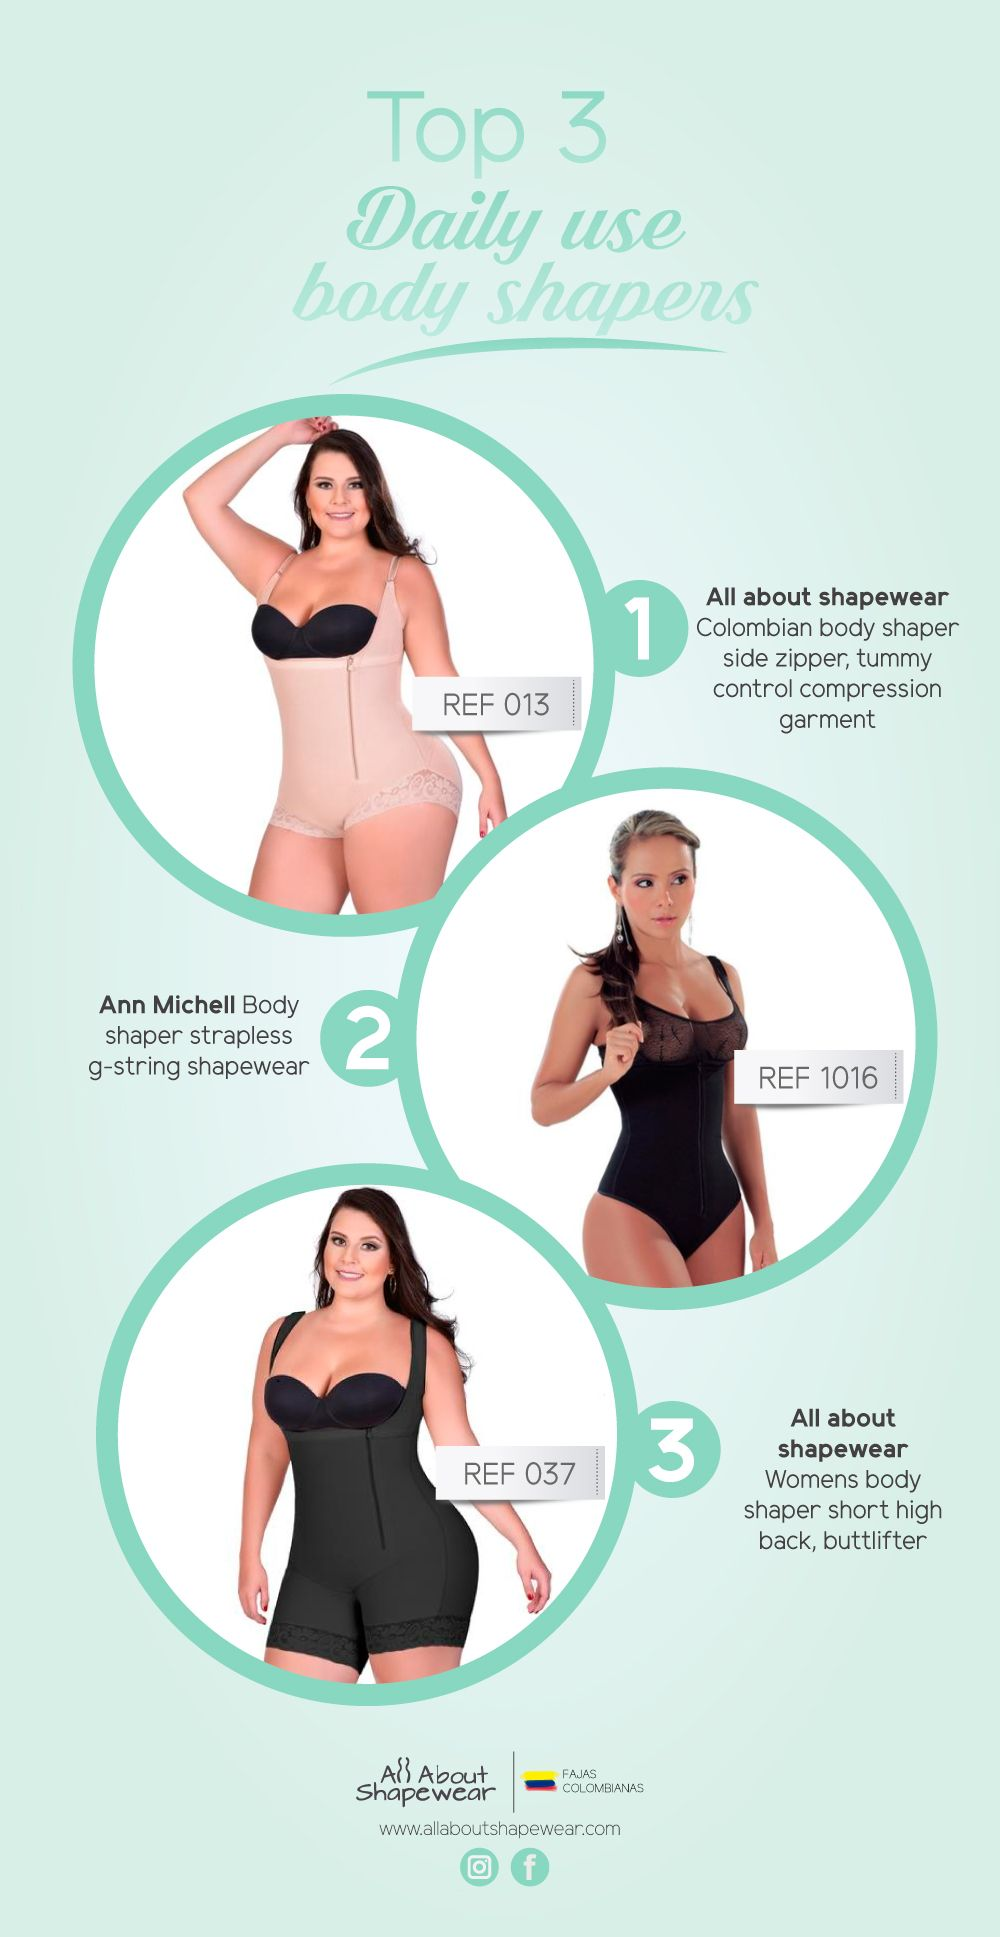 f75b6e4f6fd1a Not Sure which Daily Use Body Shaper to try  See Our TOP 3 Garments ...